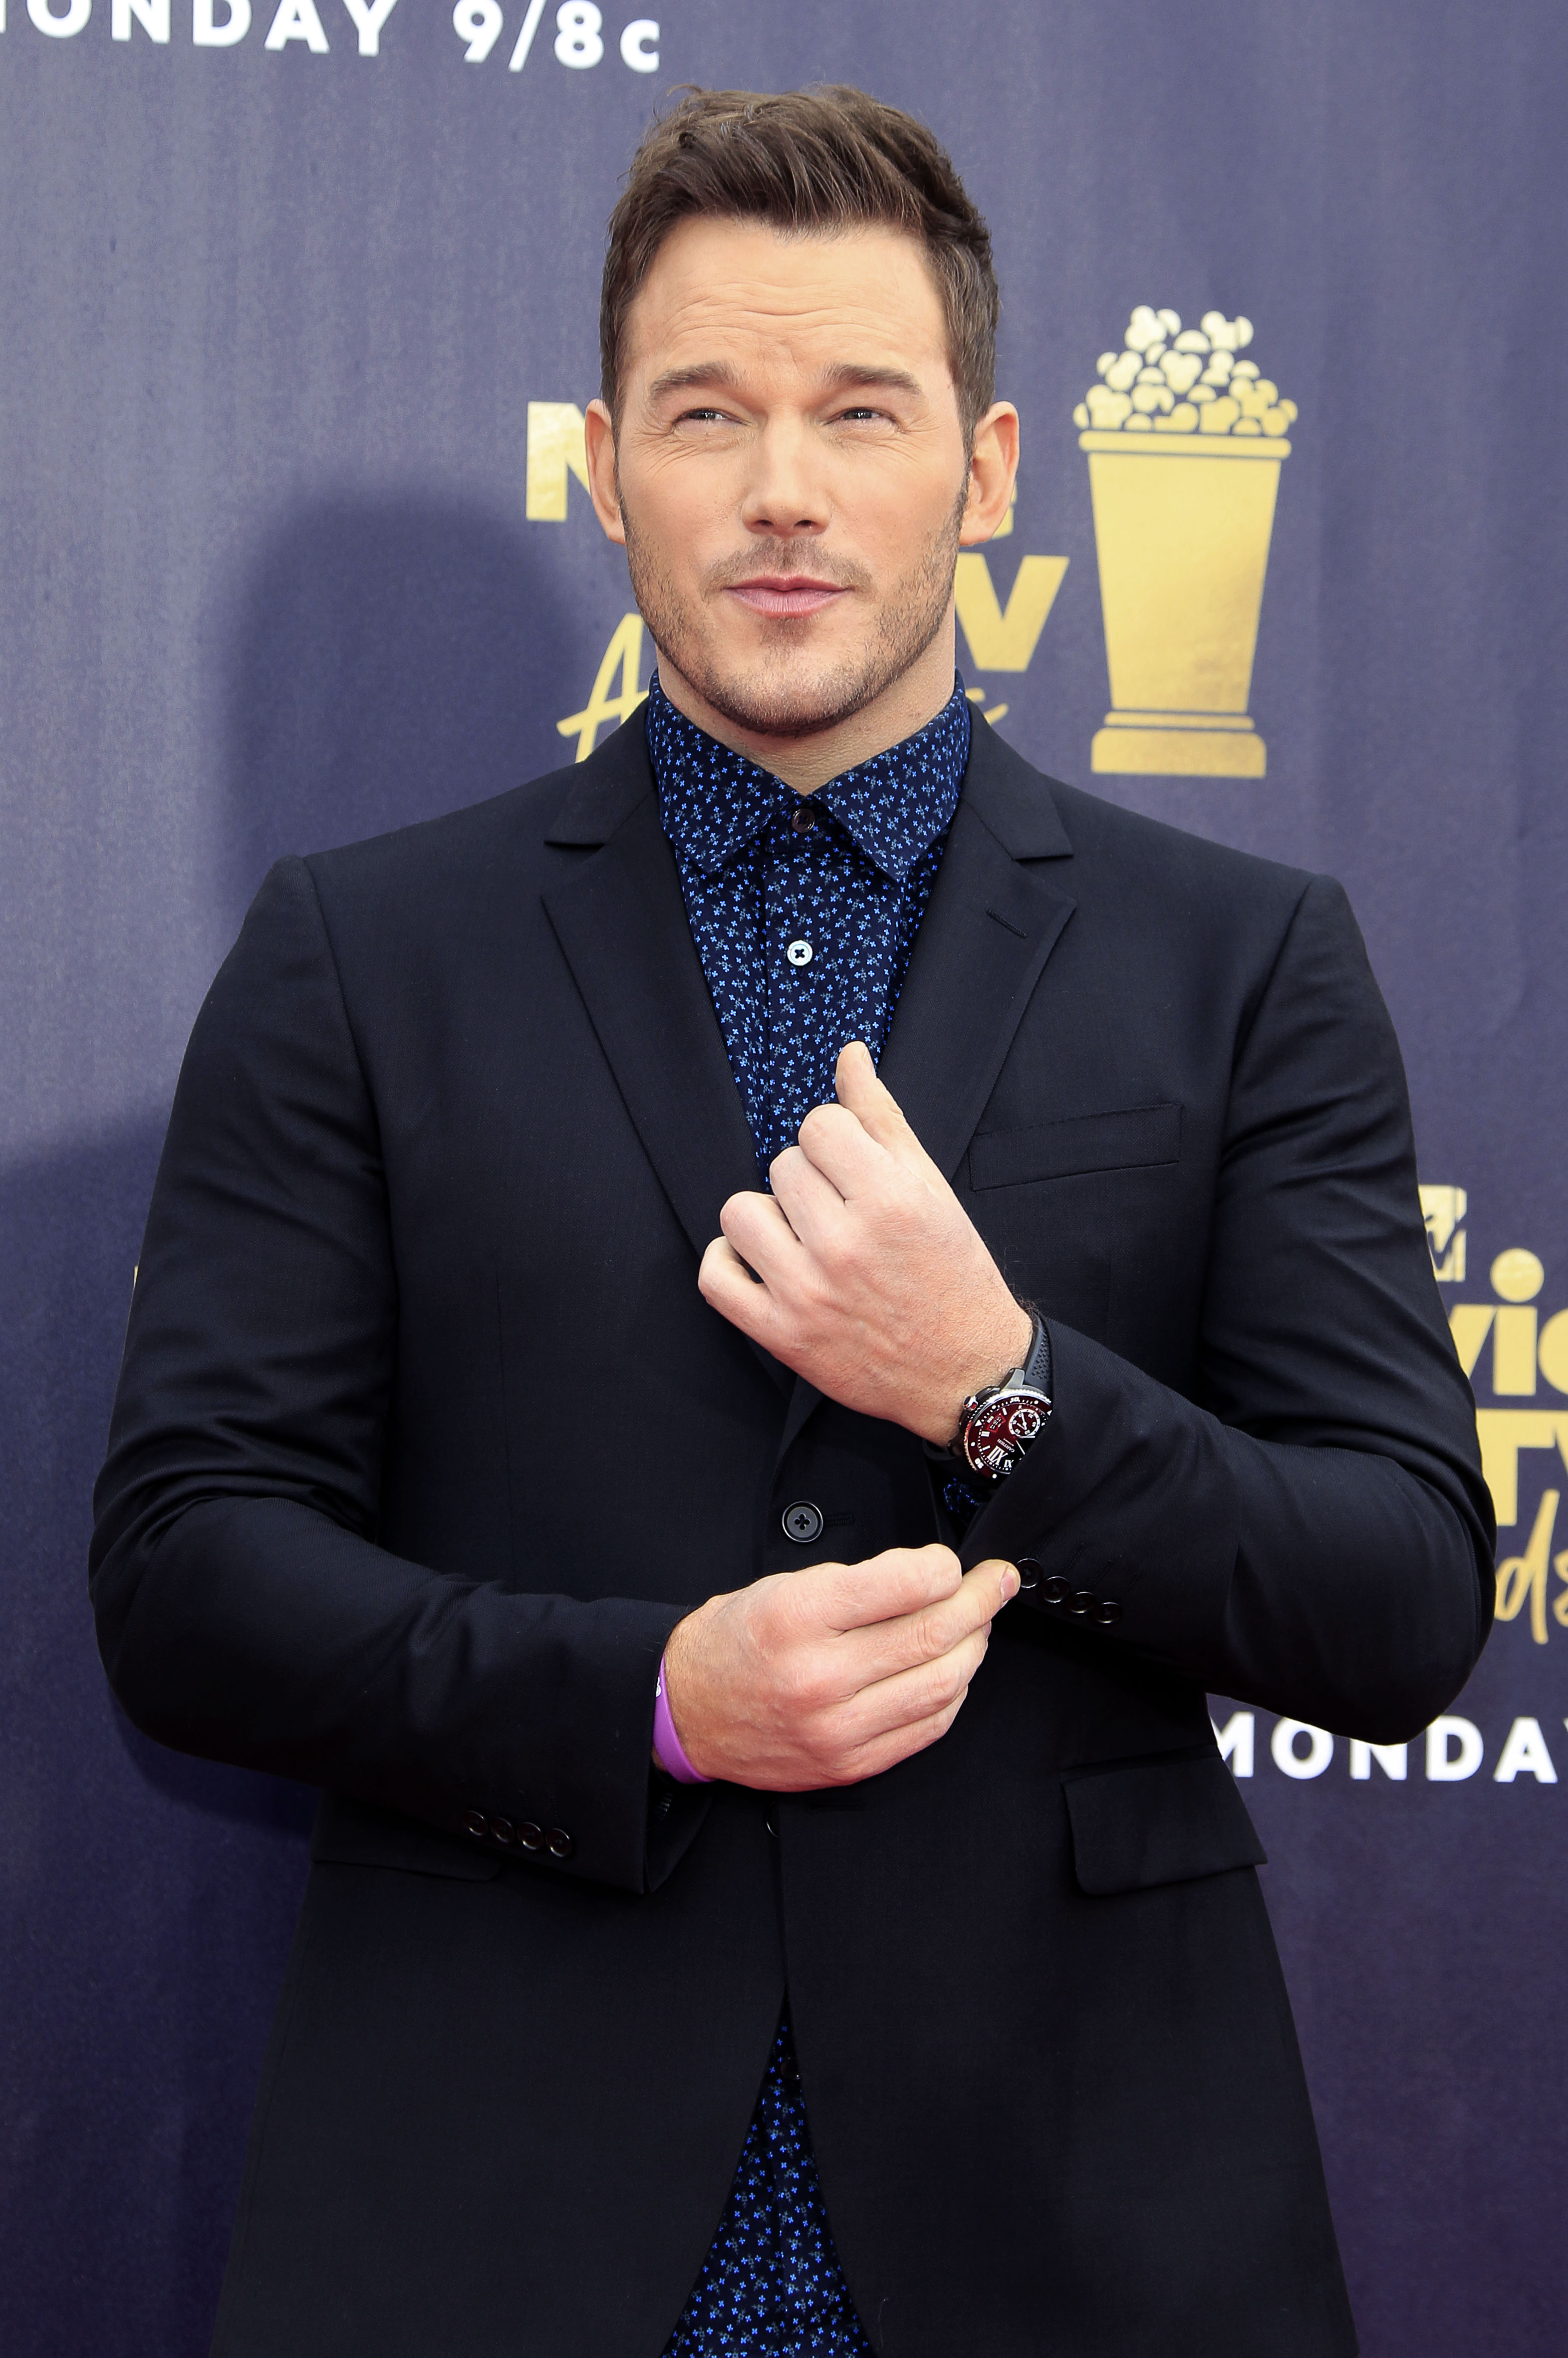 Chris Pratt at the 2018 MTV Movie & TV Awards held at Barker Hangar in Santa Monica, California. (When: Jun. 16, 2018. Credit: Dave Bedrosian/Future Image/WENN.com)